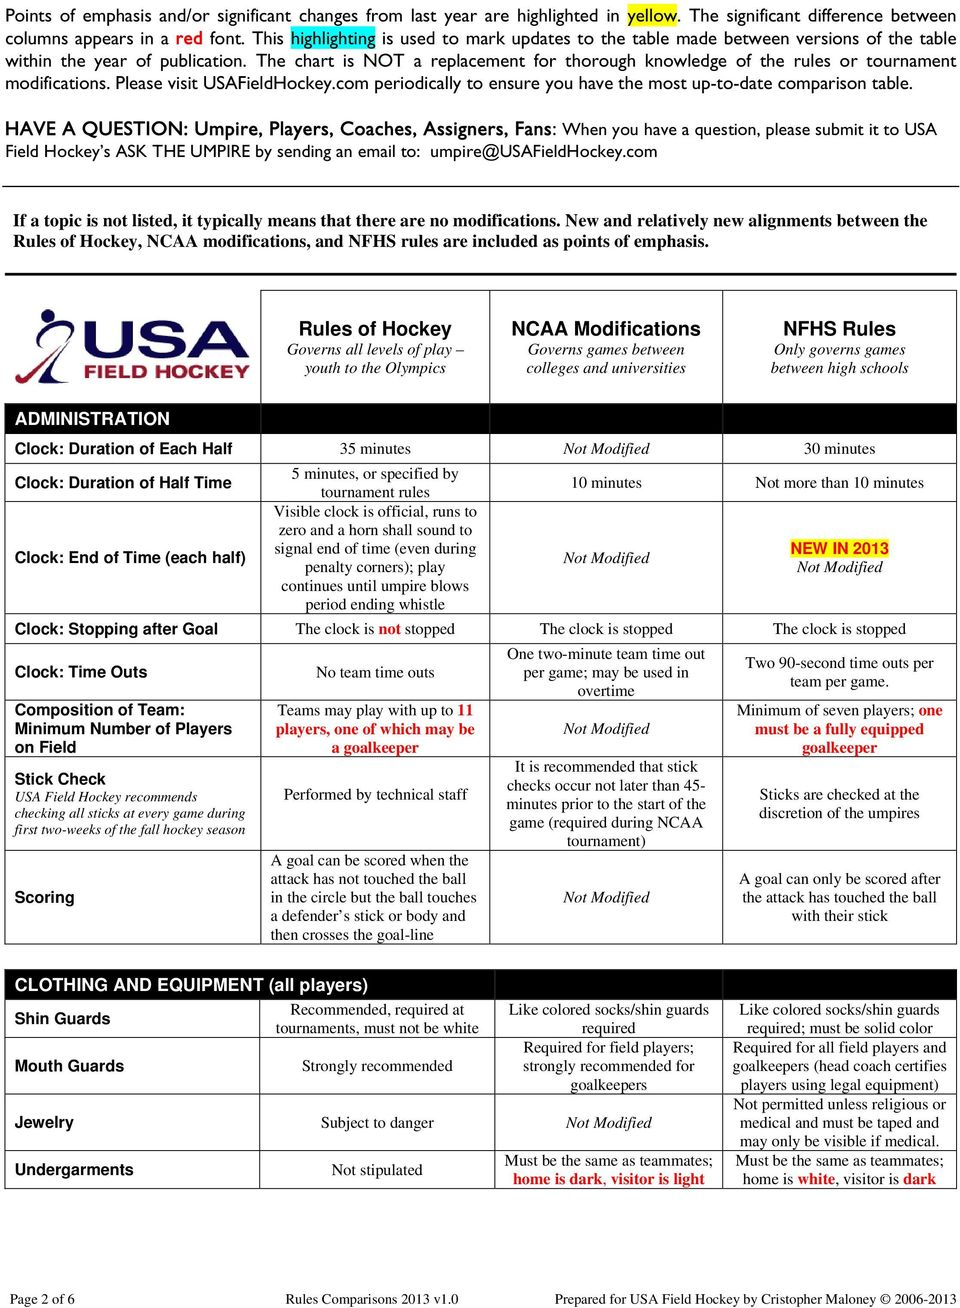 The chart is NOT a replacement for thorough knowledge of the rules or tournament modifications. Please visit USAFieldHockey.com periodically to ensure you have the most up-to-date comparison table.